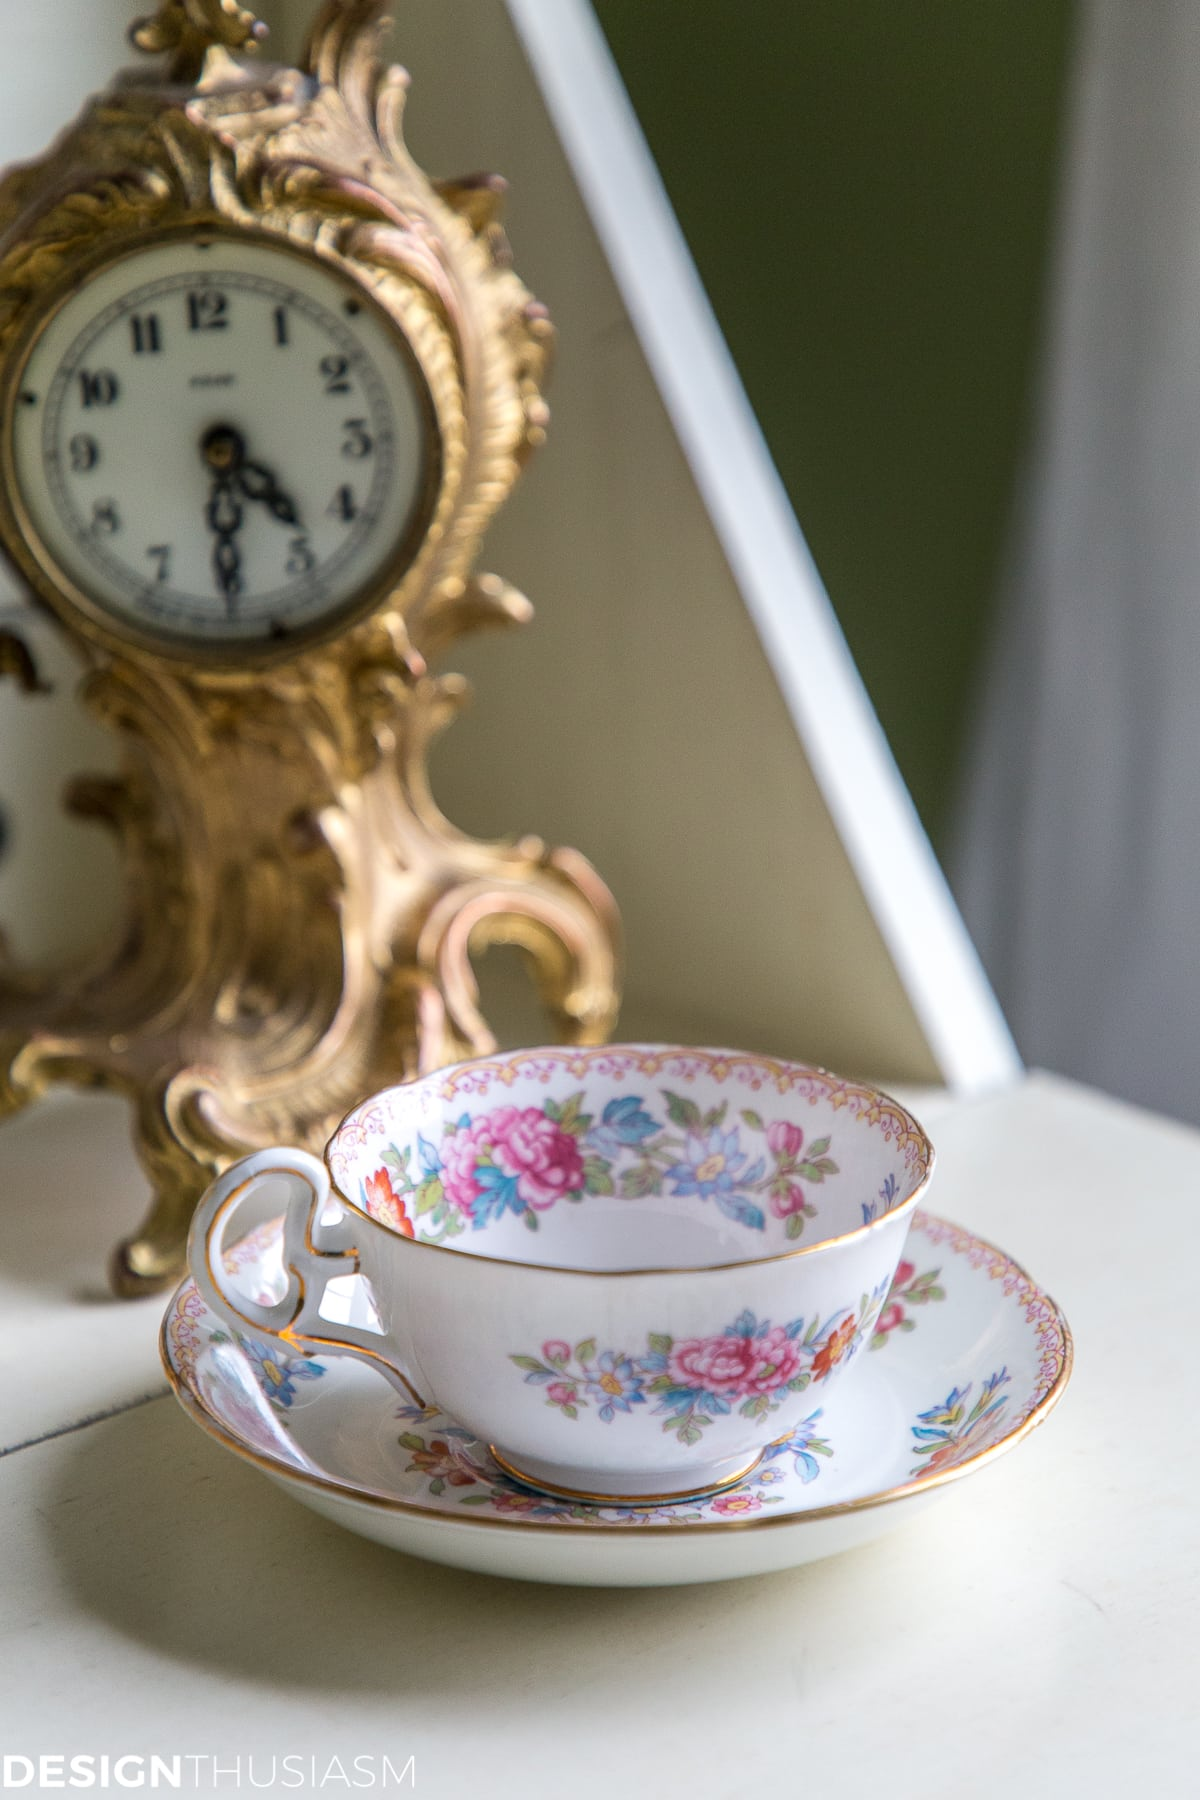 Royal Grafton bone china teacup